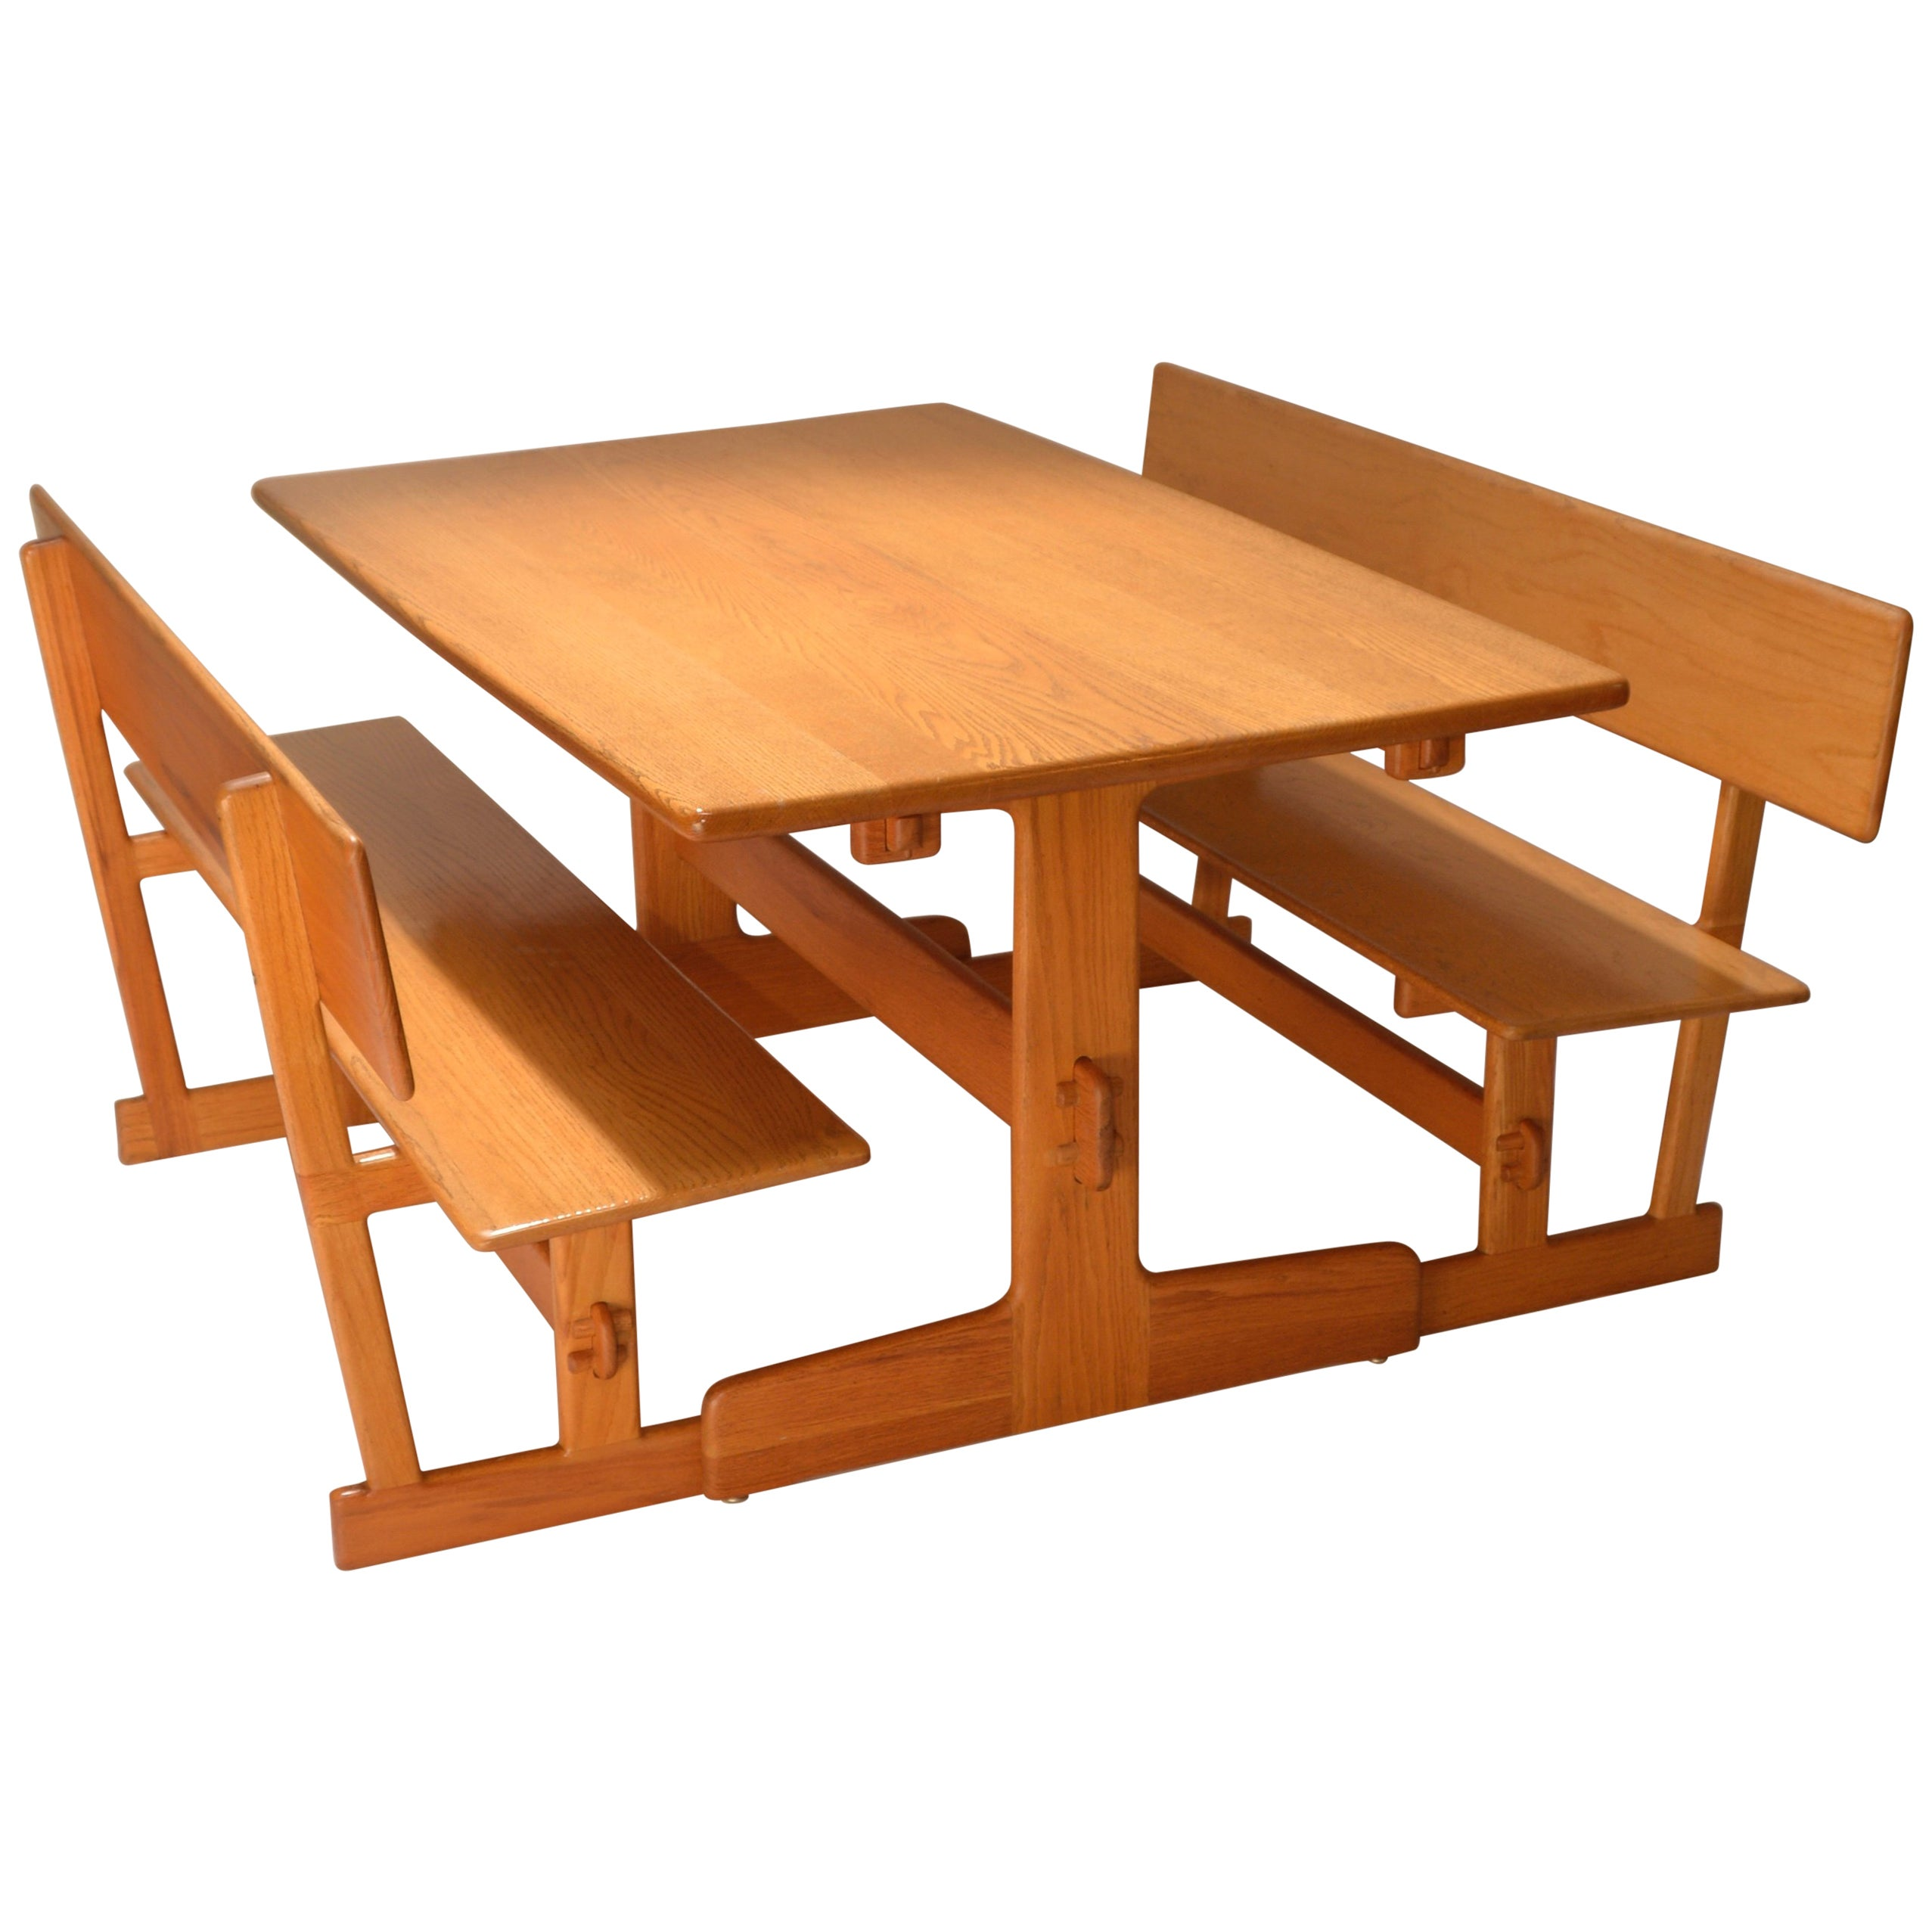 Gerald McCabe Oak Trestle Dining Table And Benches For Orange Crate Modern  For Sale At 1stdibs